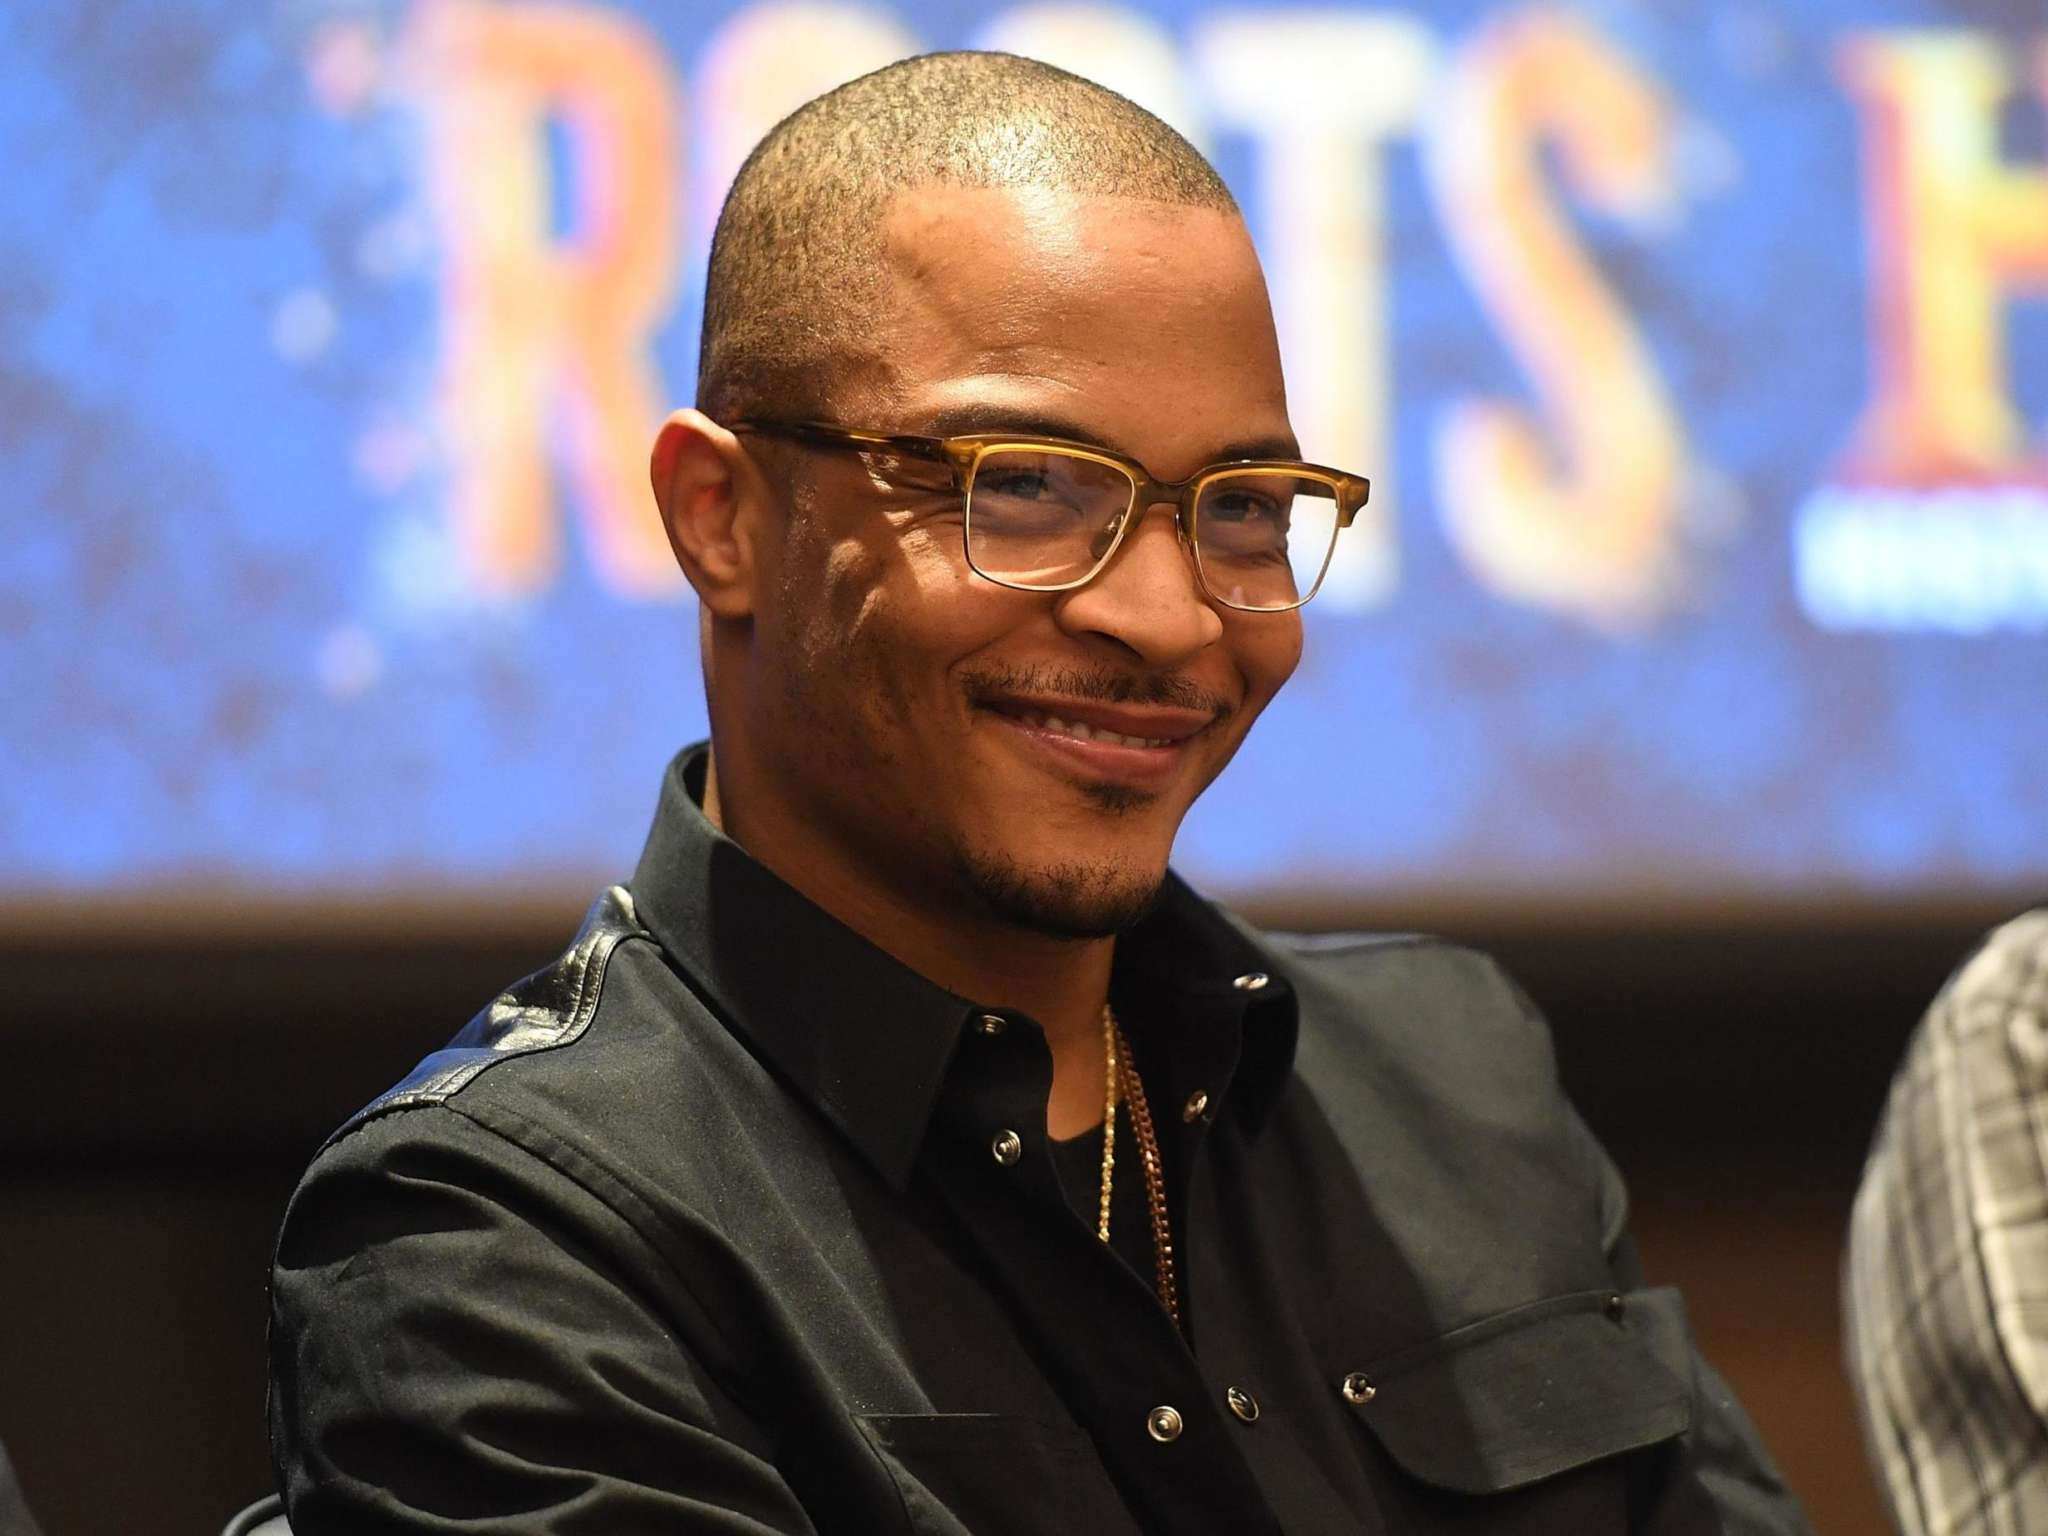 T.I. Addresses Strange Kind Of Addictions - Check Out His Message